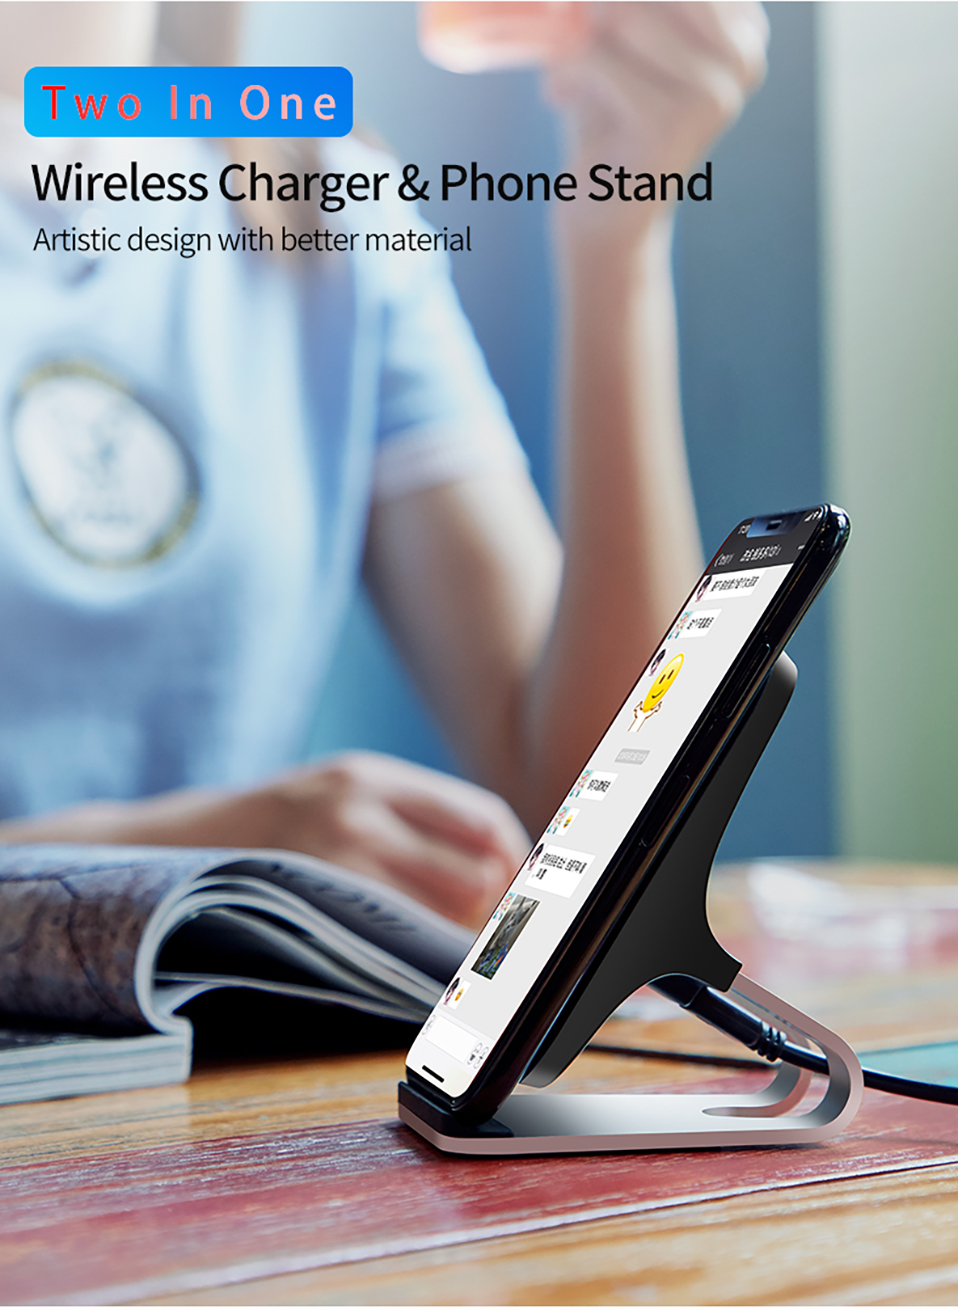 wireless-charger_05